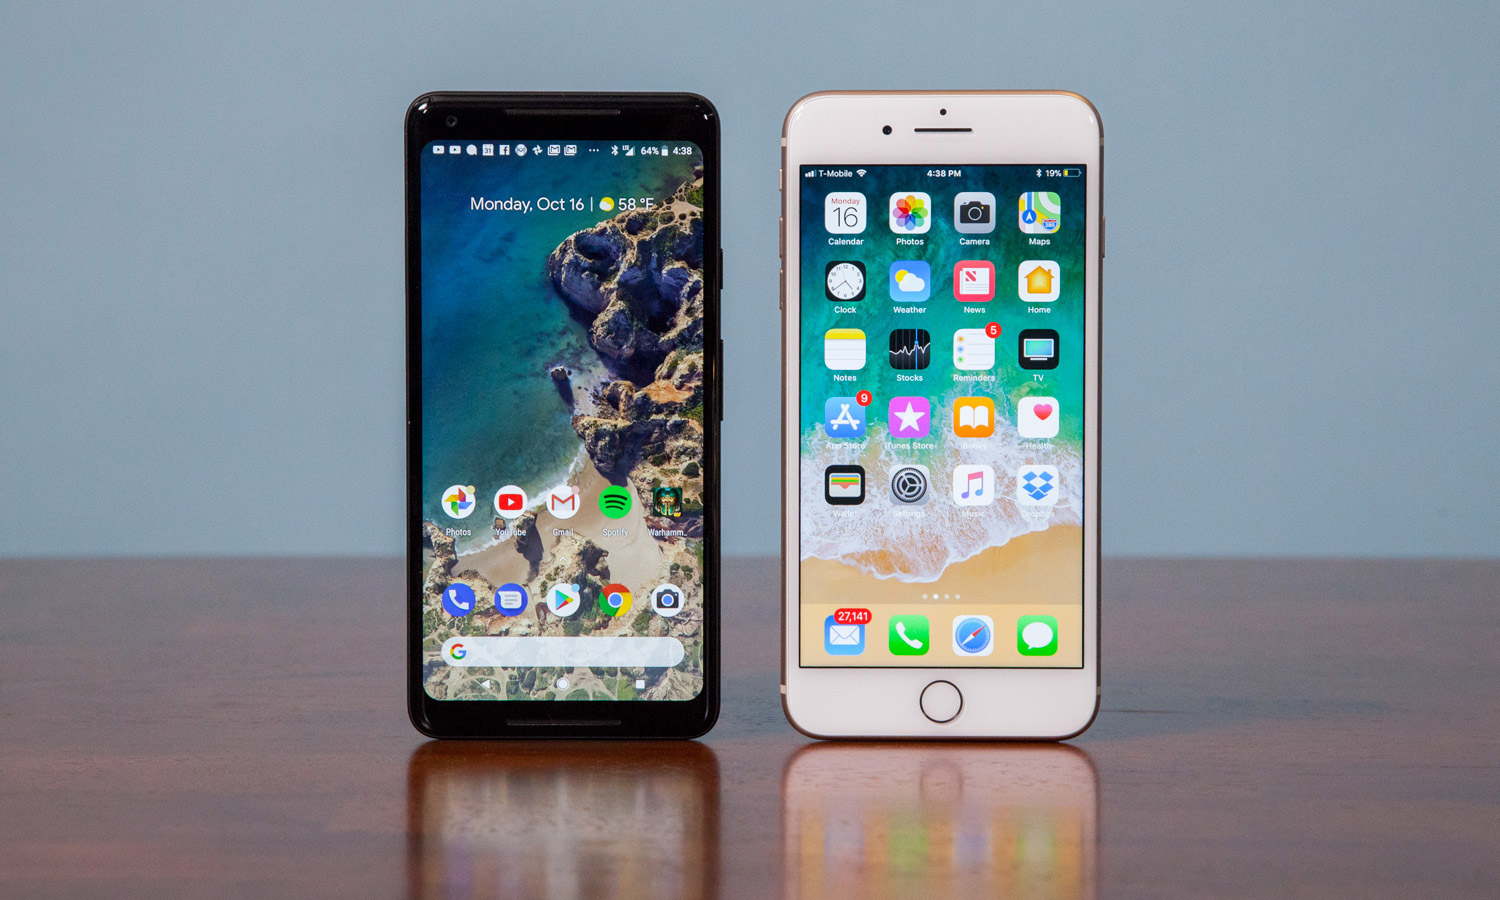 A Google Pixel 2 and an Apple iPhone 8 side-by-side.